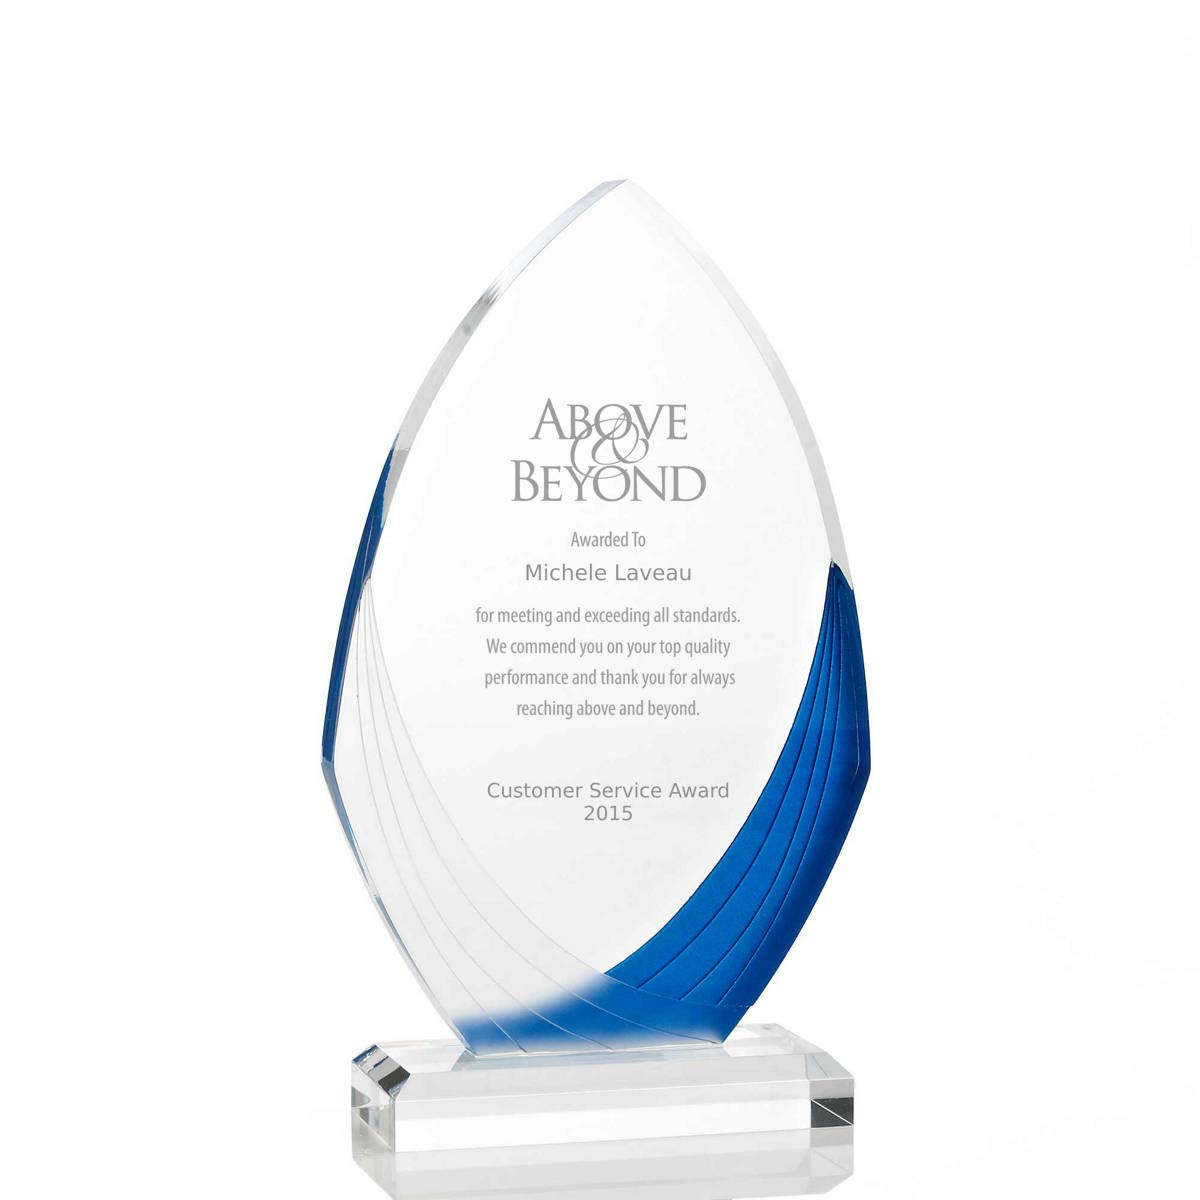 Engraved Trophy - Acrylic - Peaked Ellipse Shaped - Blue and Frosted White - Award for Employees - Personalized Engraving Up To Three Lines and Pre-Written Verse Selection - Comes In Gift Box by Baudville